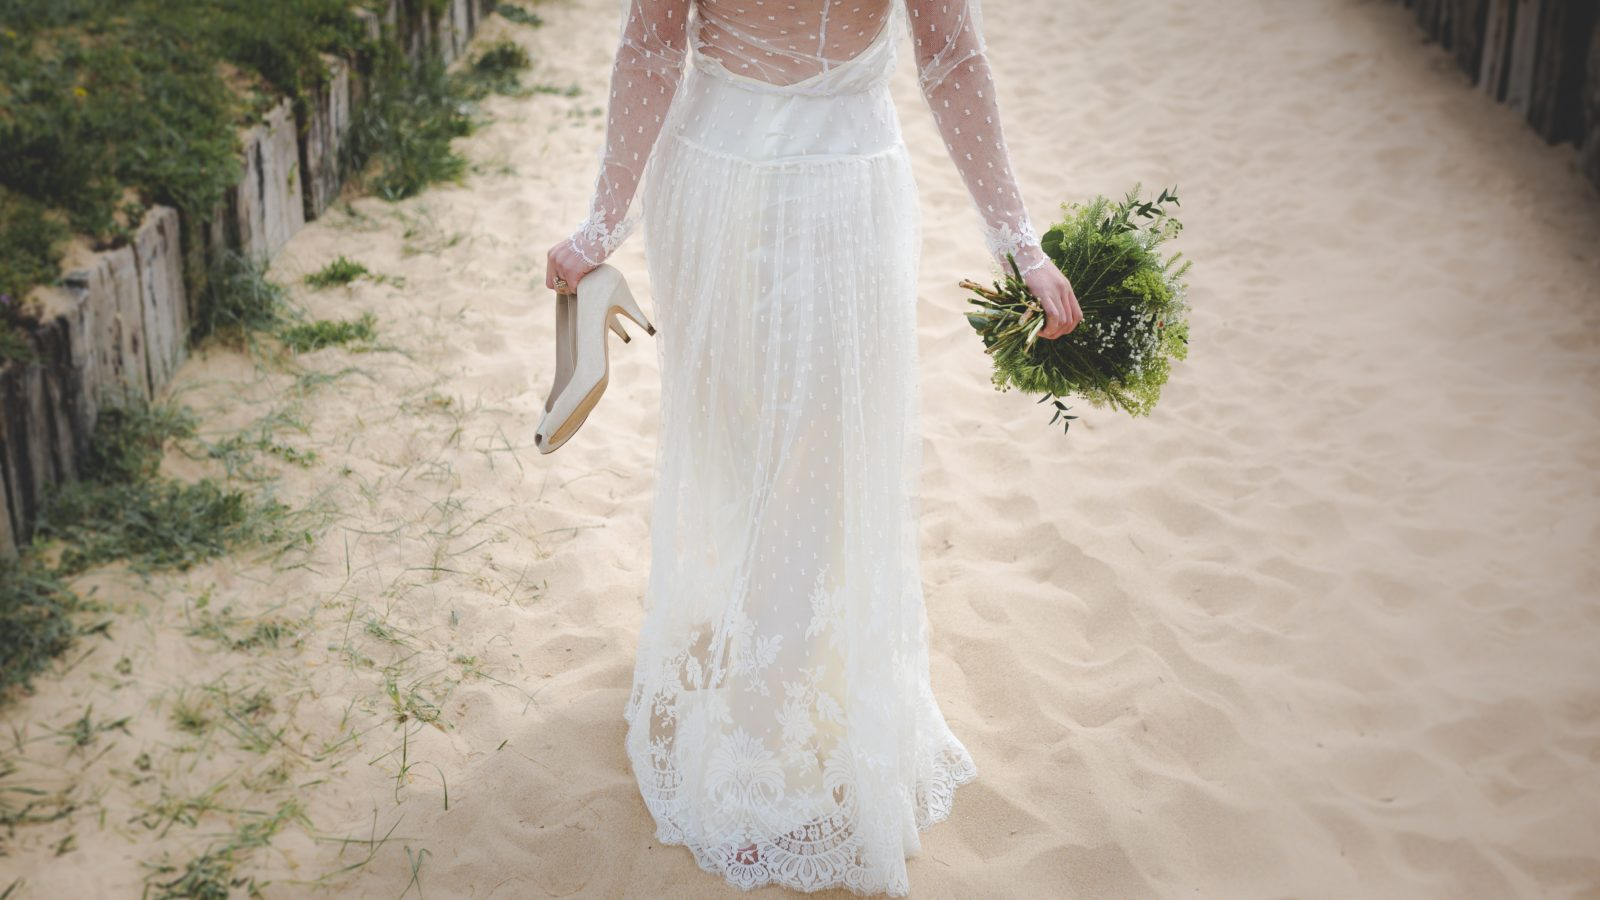 5 IDEAL SECRETS ON HOW TO HAVE A STRESS-FREE WEDDING - Ideal Magazine